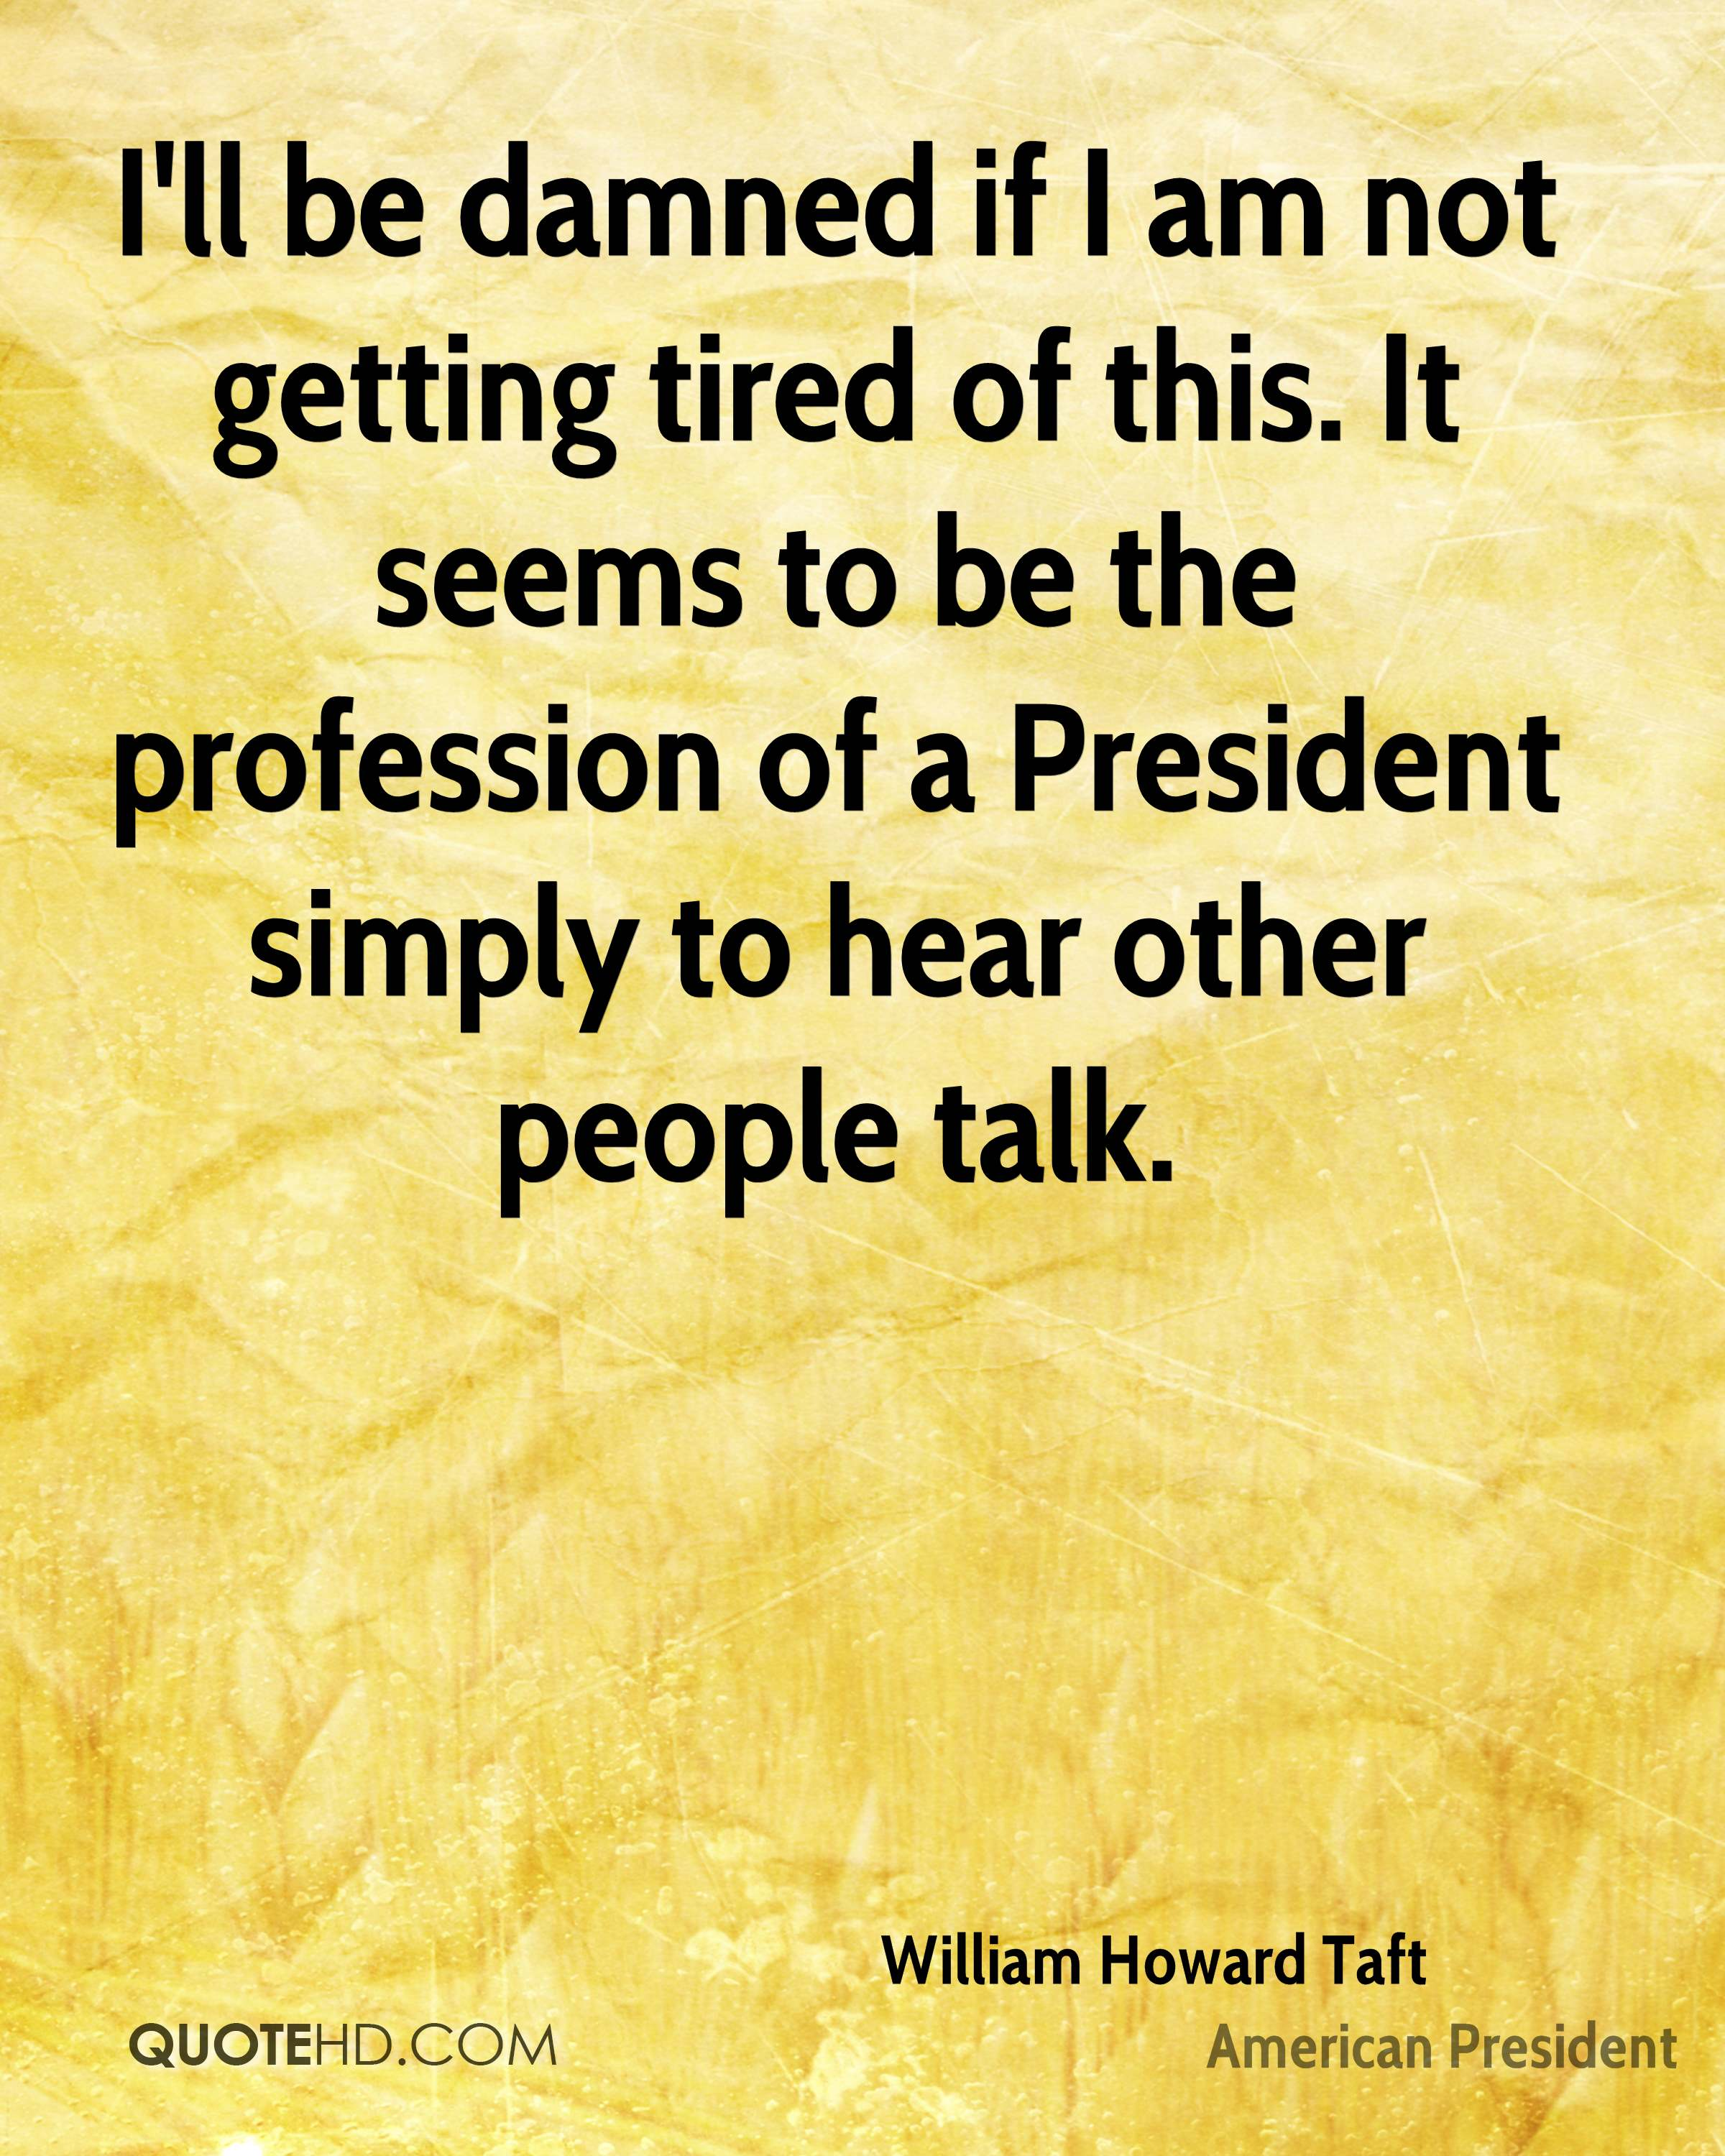 I'll be damned if I am not getting tired of this. It seems to be the profession of a President simply to hear other people talk.